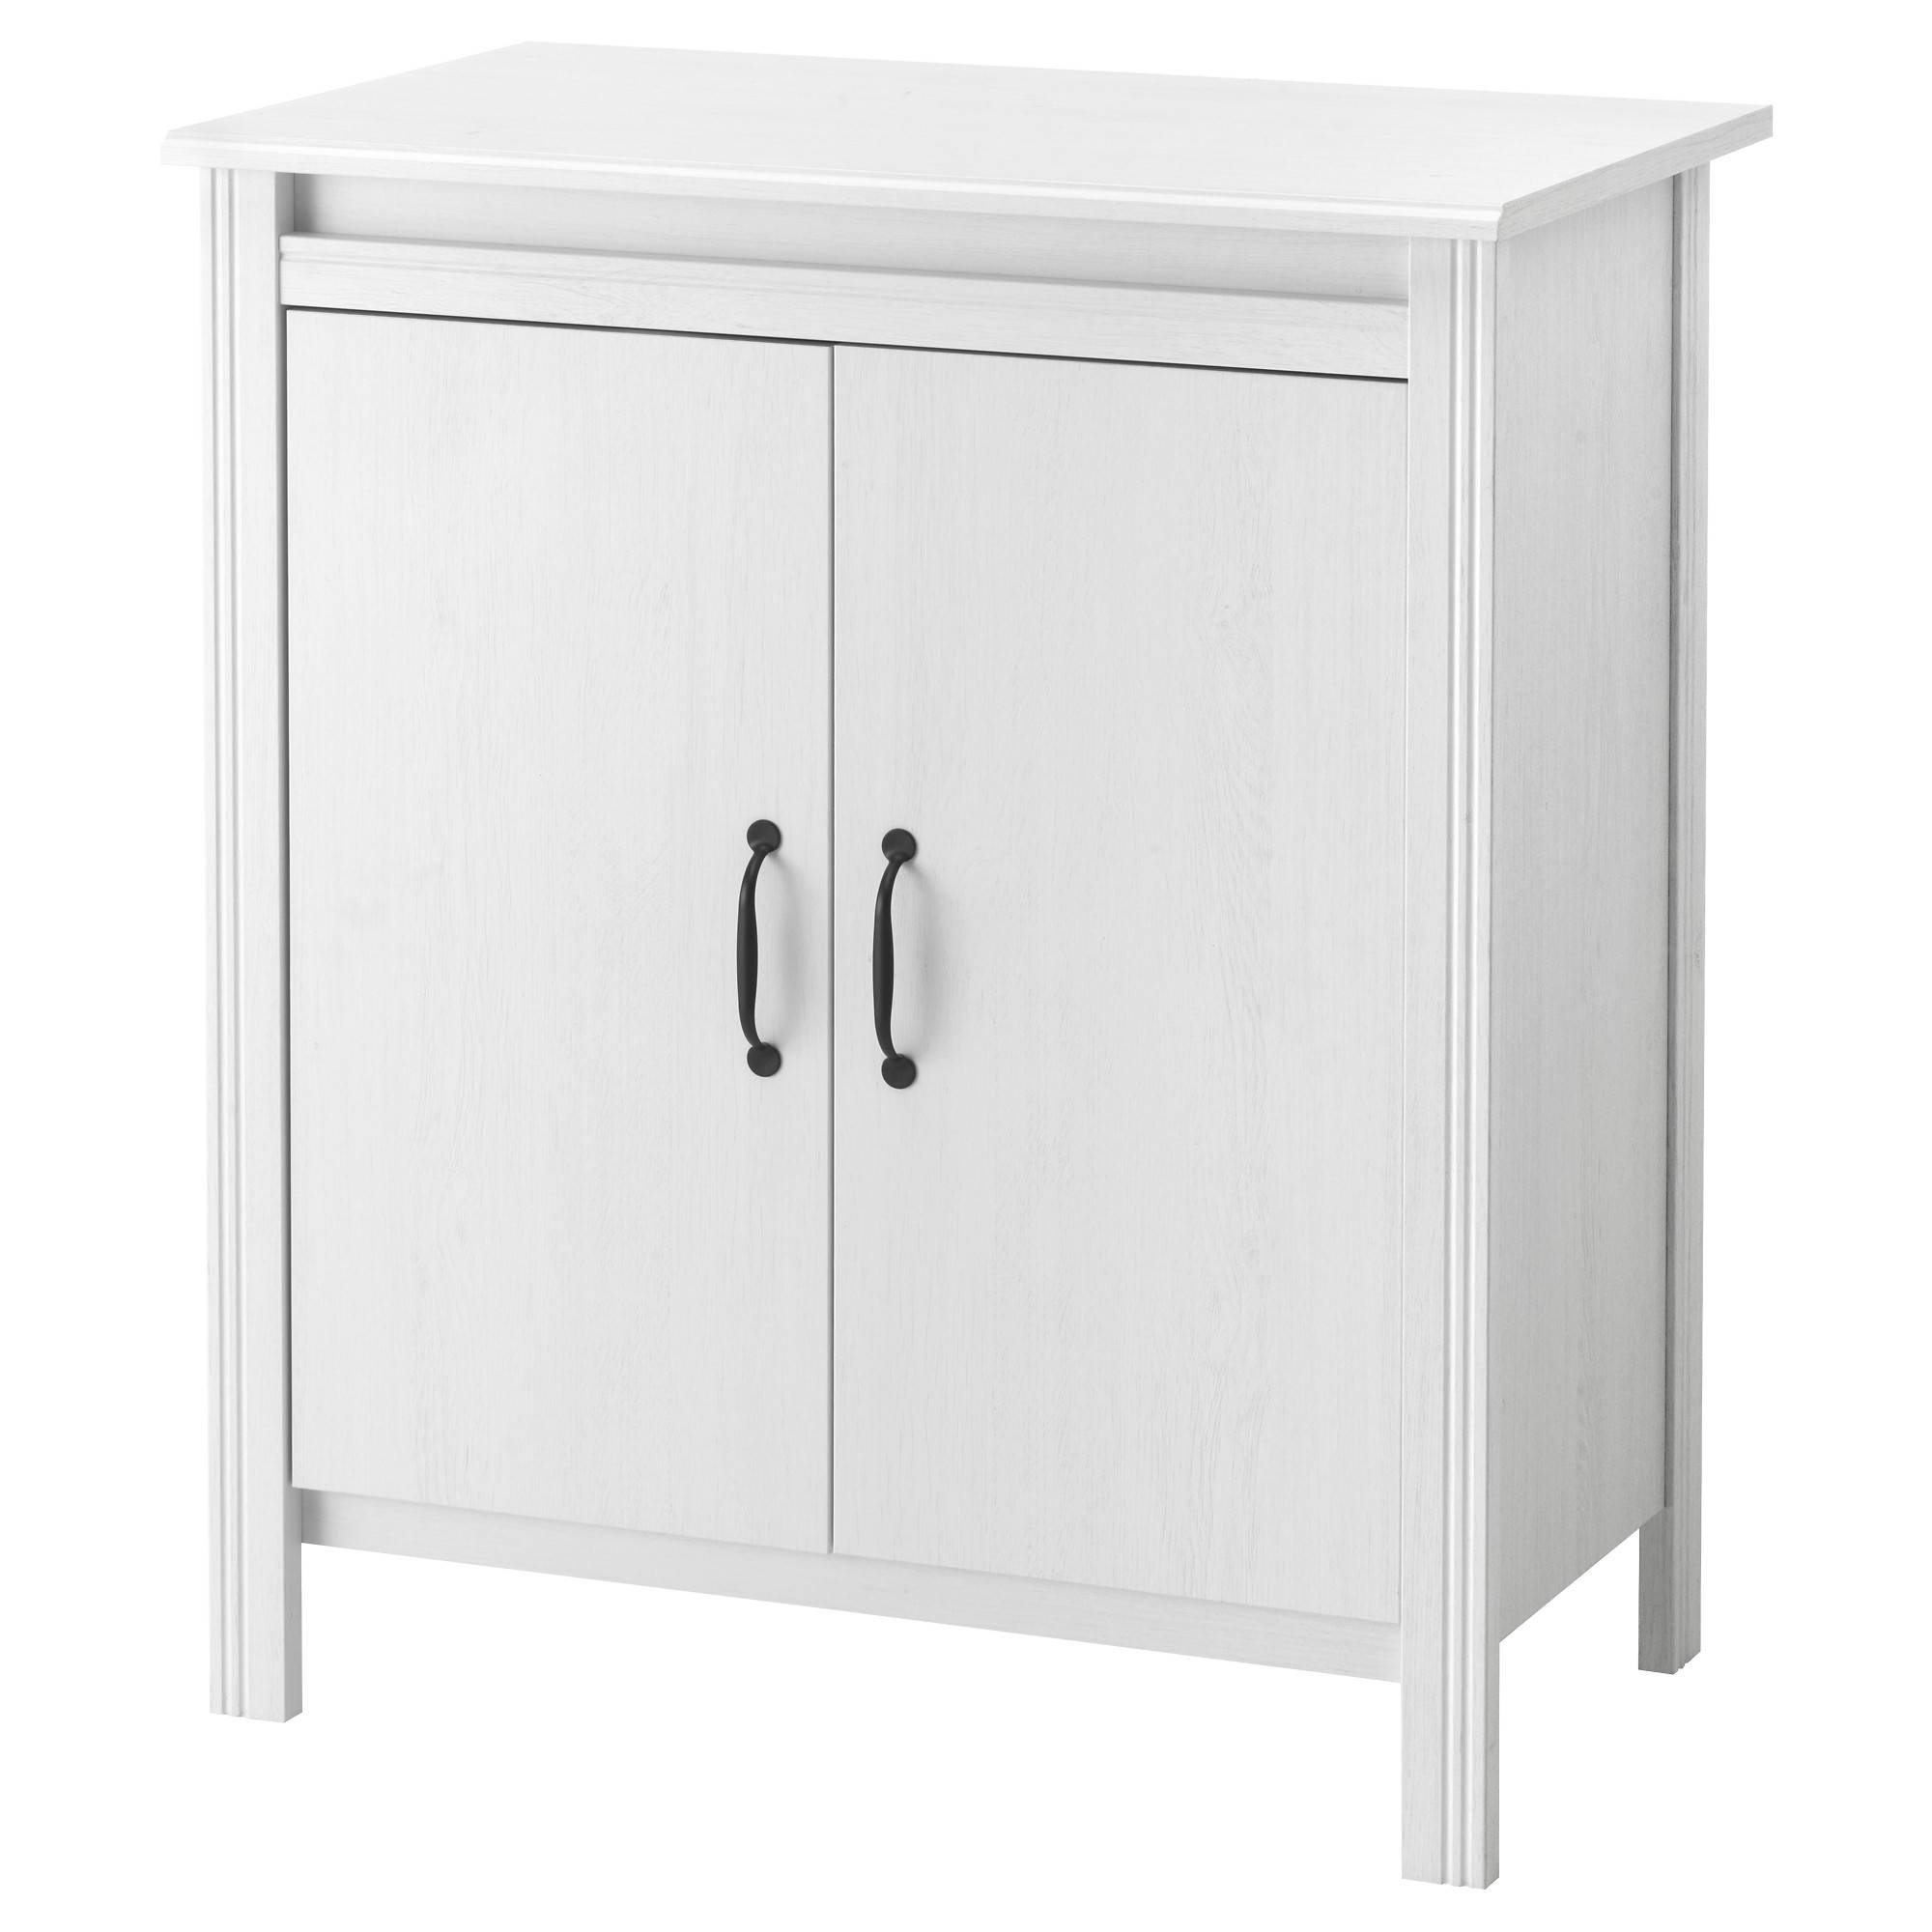 Cabinets & Sideboards – Ikea For 80 Inch Sideboards (View 17 of 30)